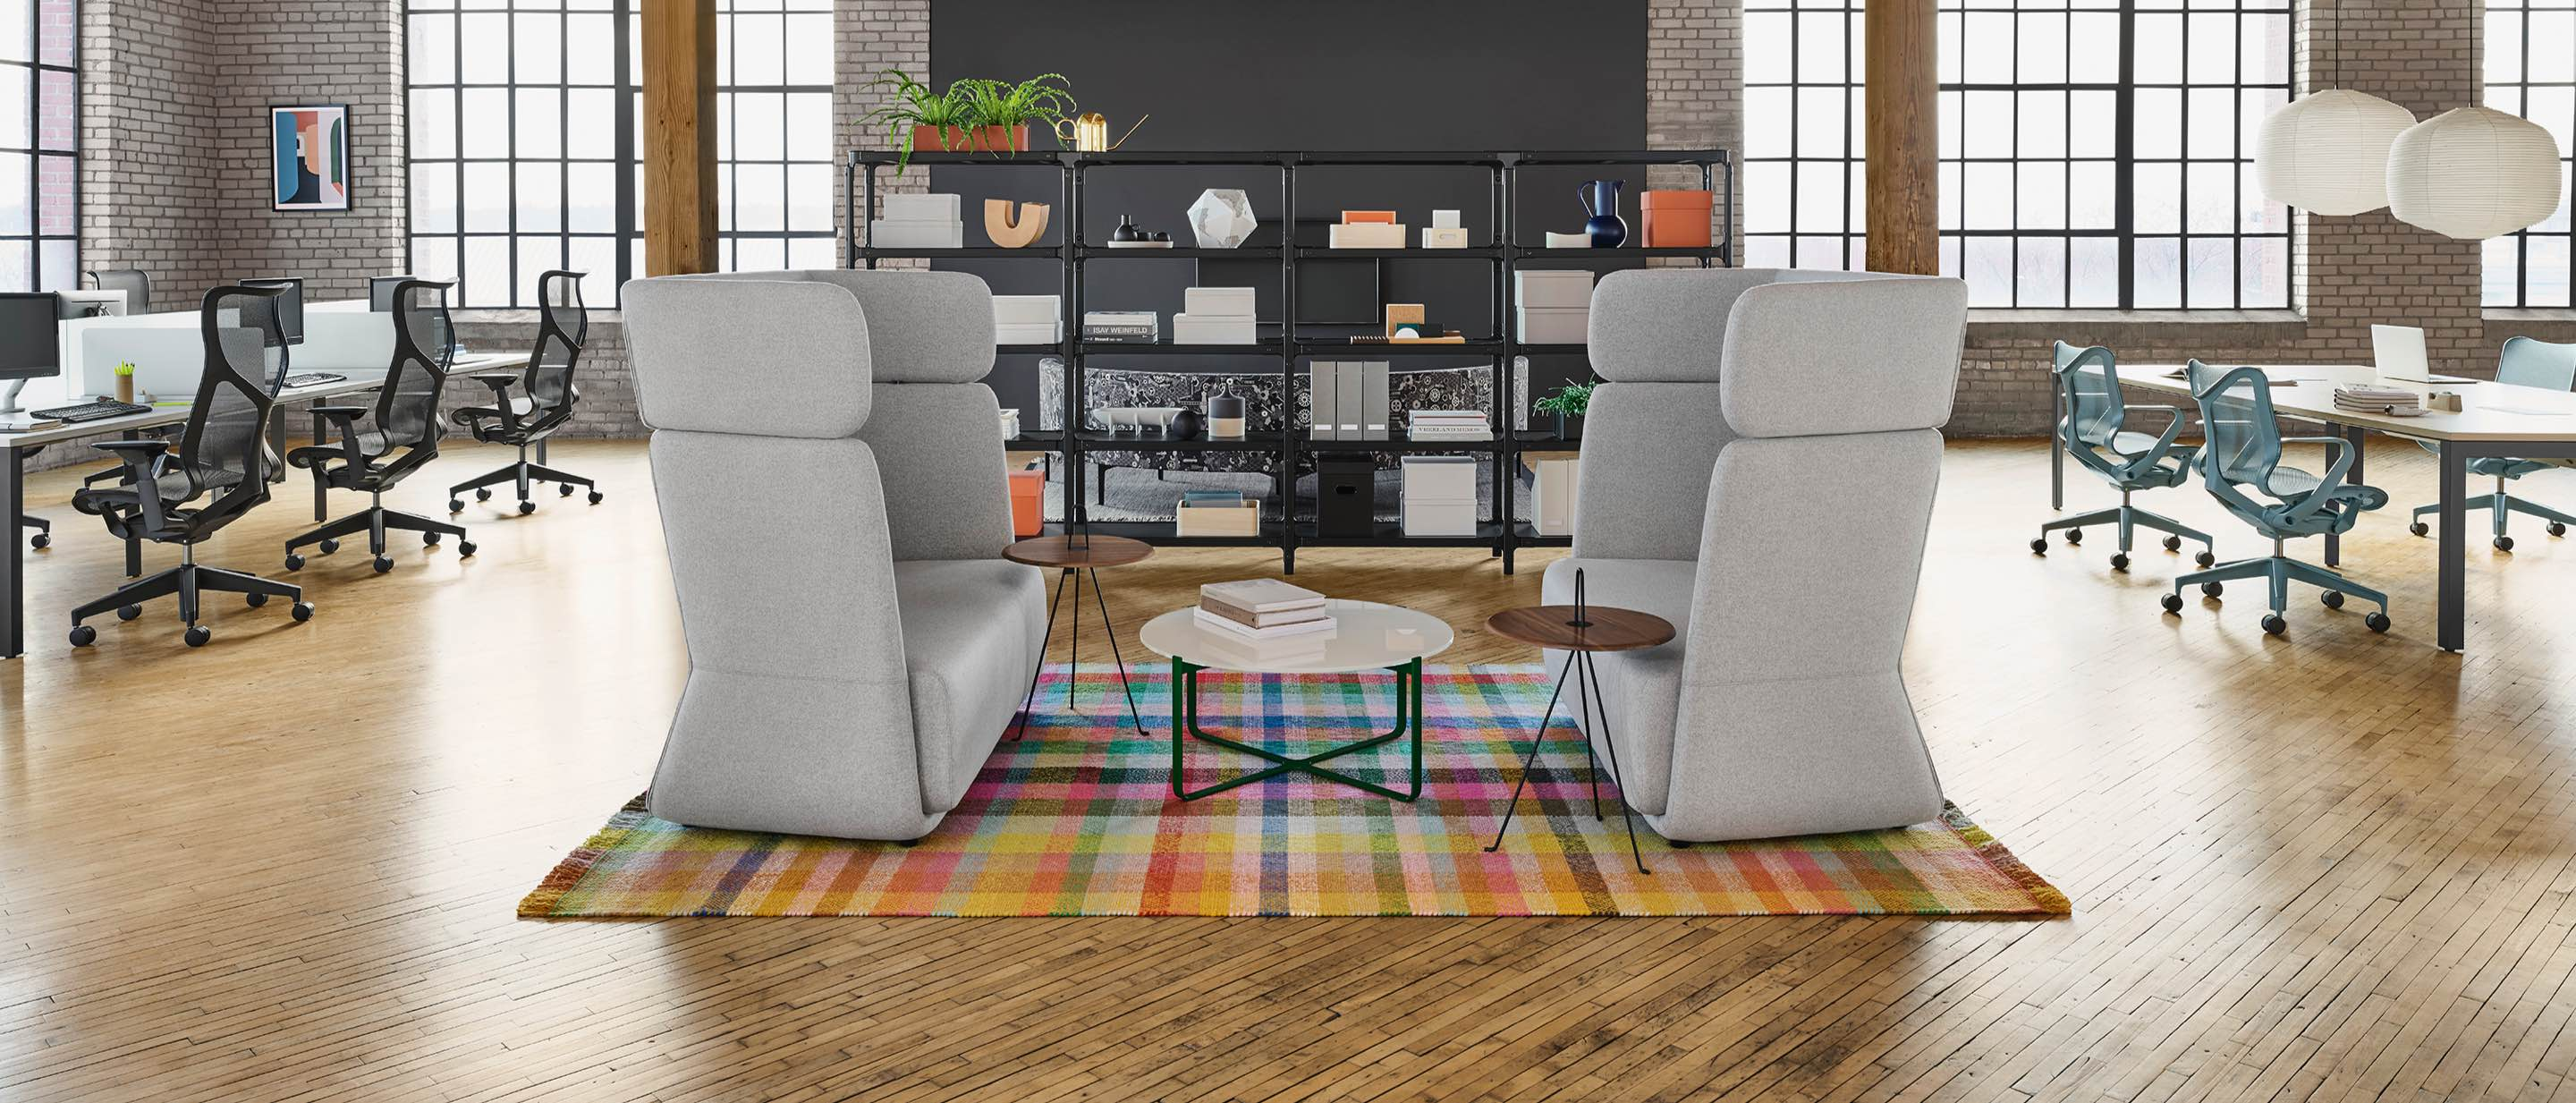 A loft space with exposed wooden beams. Featured are the matching gray high-back sofas, a colorful plaid rug, and black metal open shelving, surrounded on both sides with a cluster of workstations and rolling Cosm chairs.